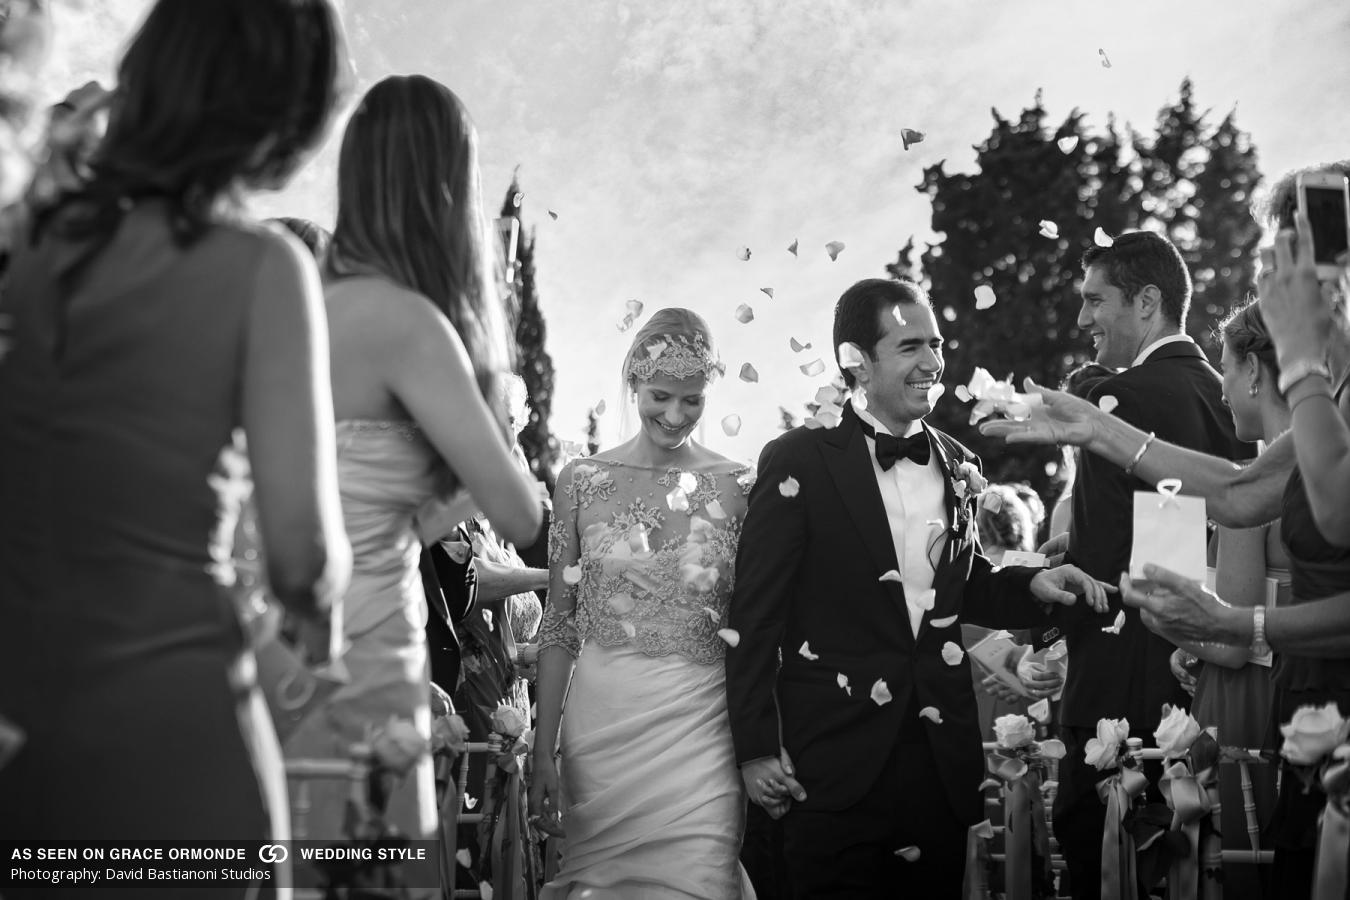 david-bastianoni-wedding-2015-07_0 :: Grace Ormonde :: Luxury wedding photography - 2 :: david-bastianoni-wedding-2015-07_0